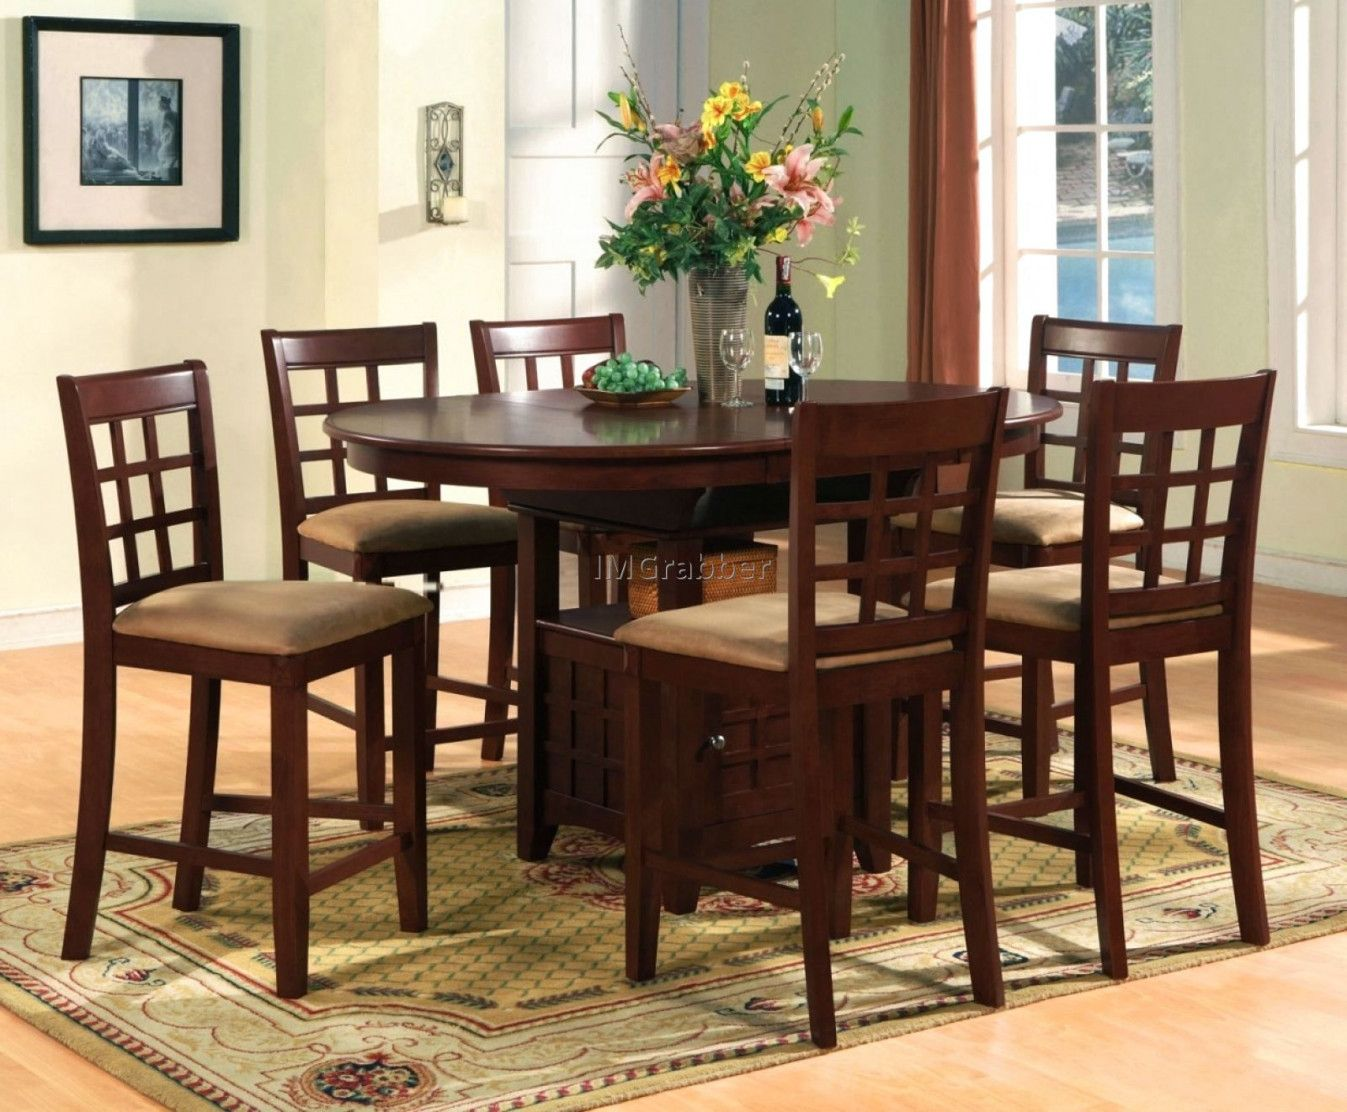 2019 Dining Room Chairs Ebay